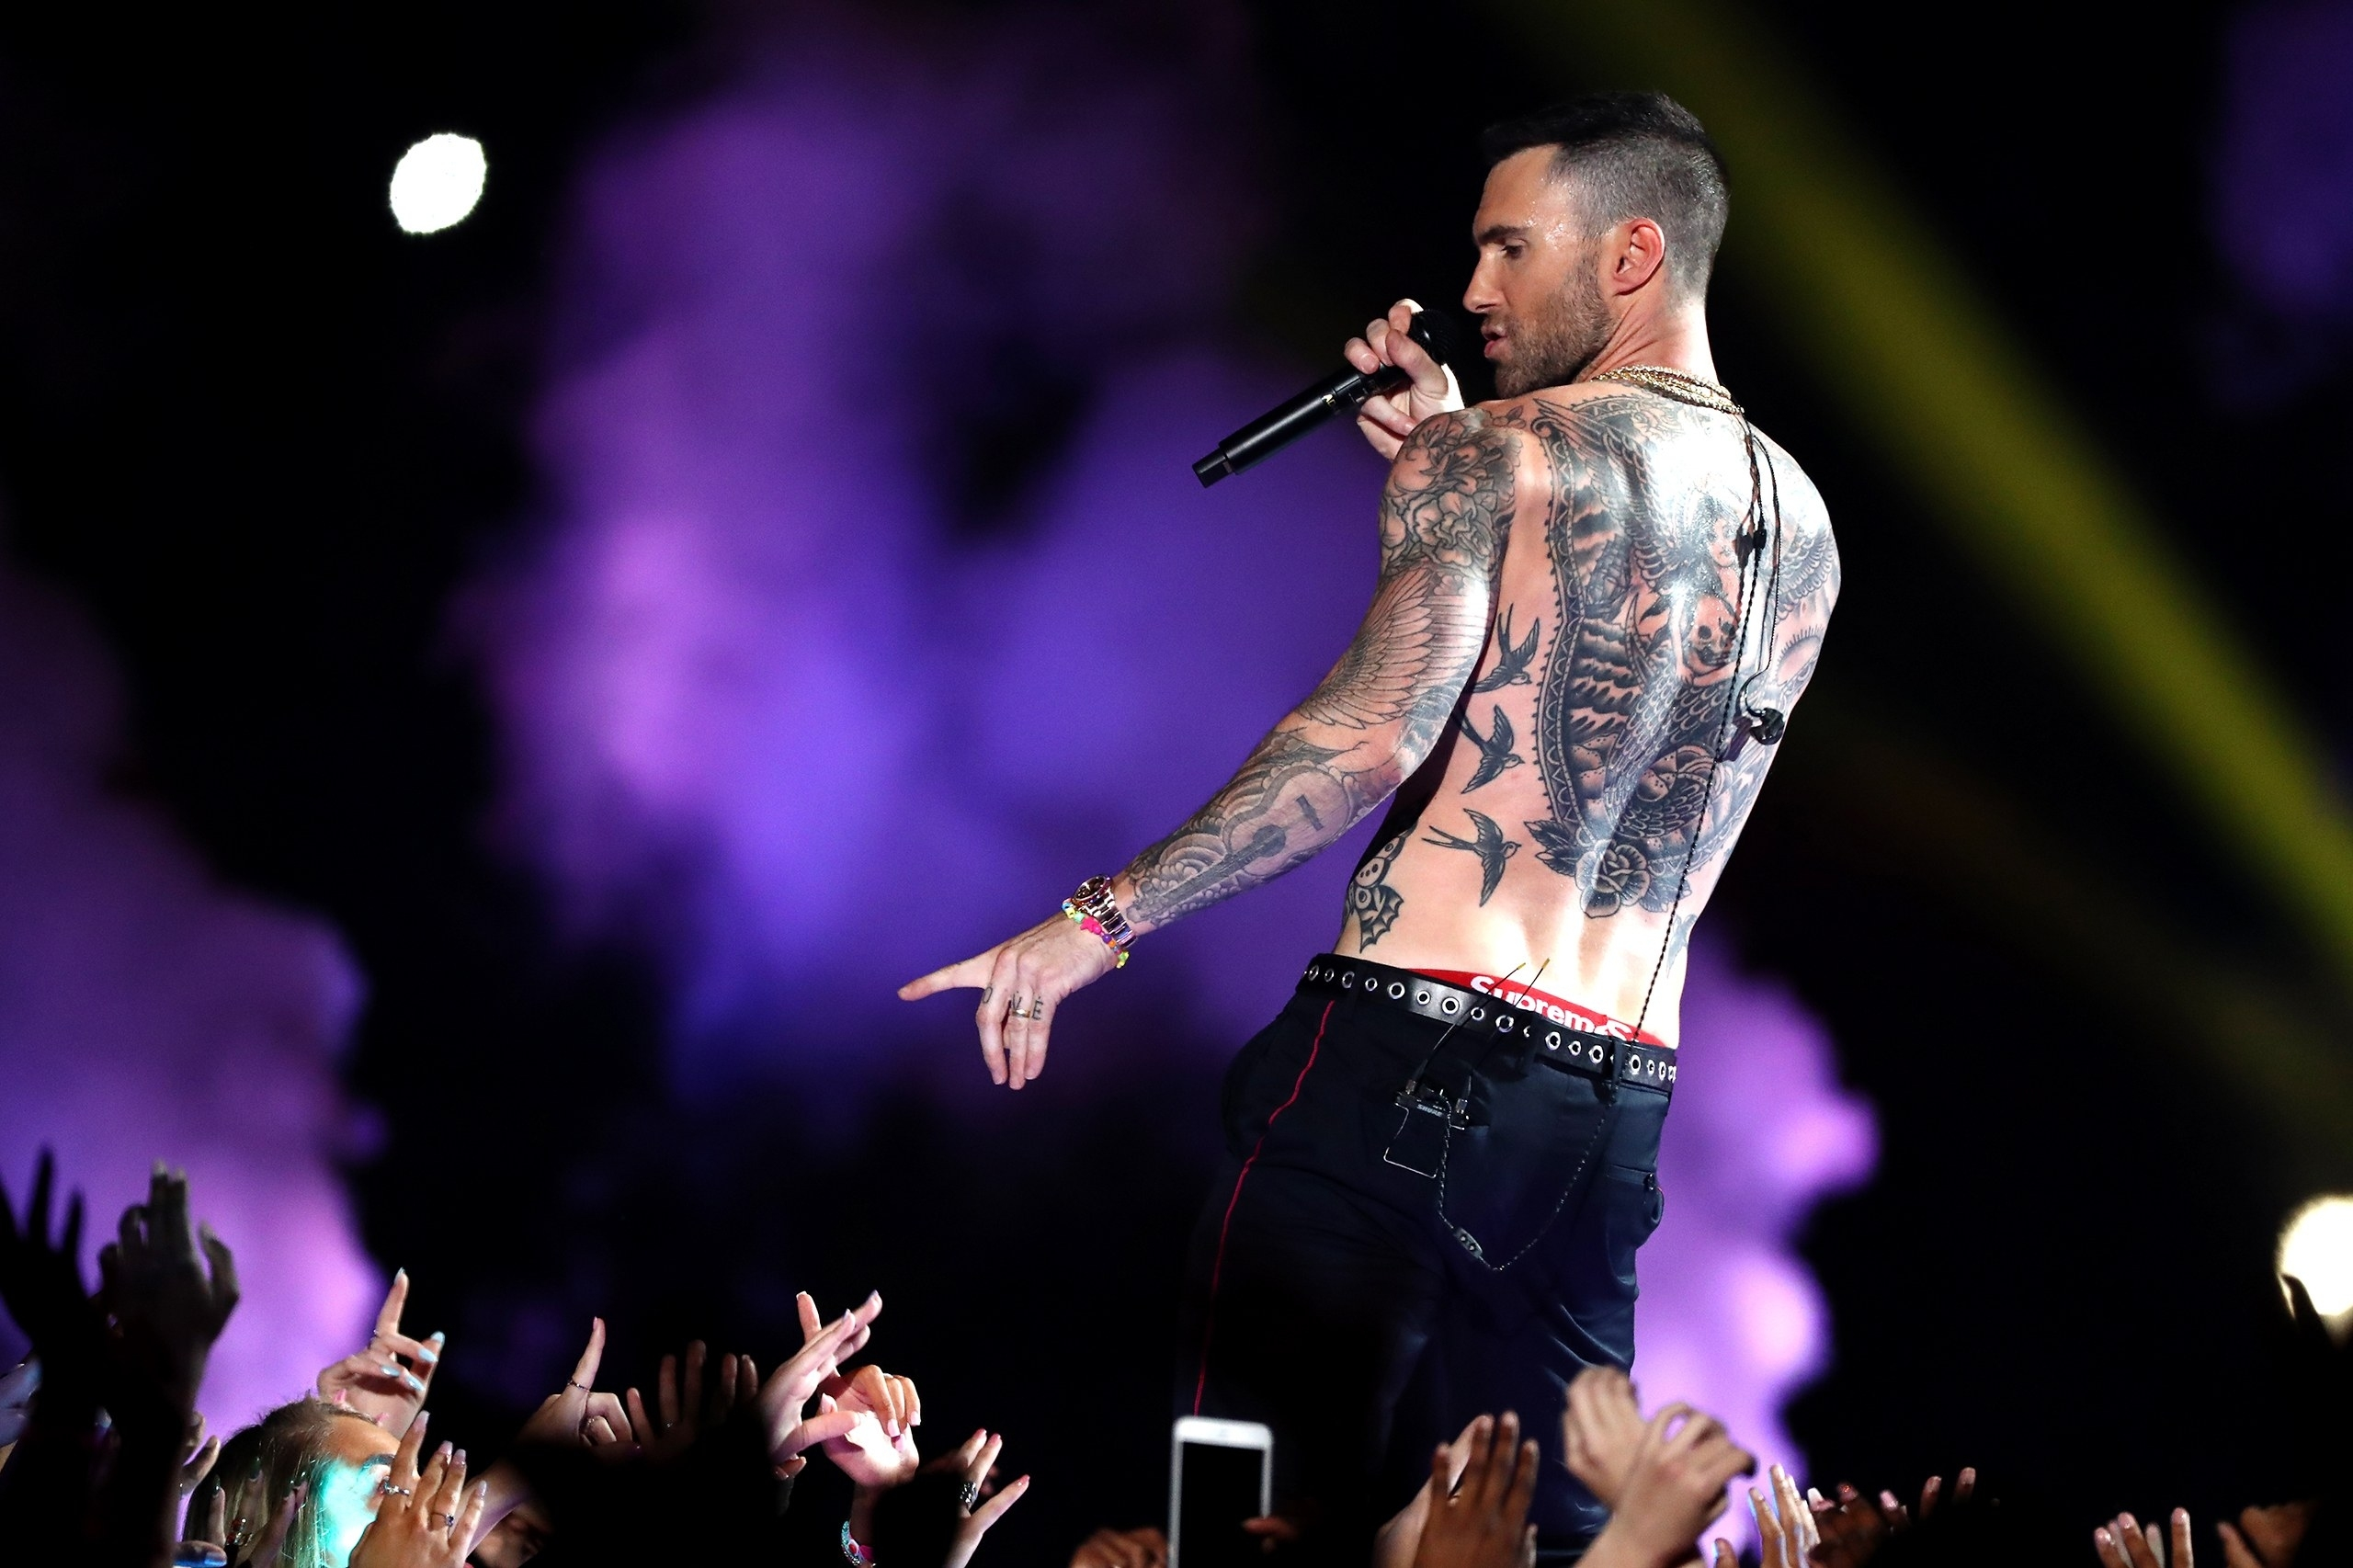 The Artless Spectacle Of Maroon 5 At The Super Bowl | The regarding Maroon 5 Super Bowl